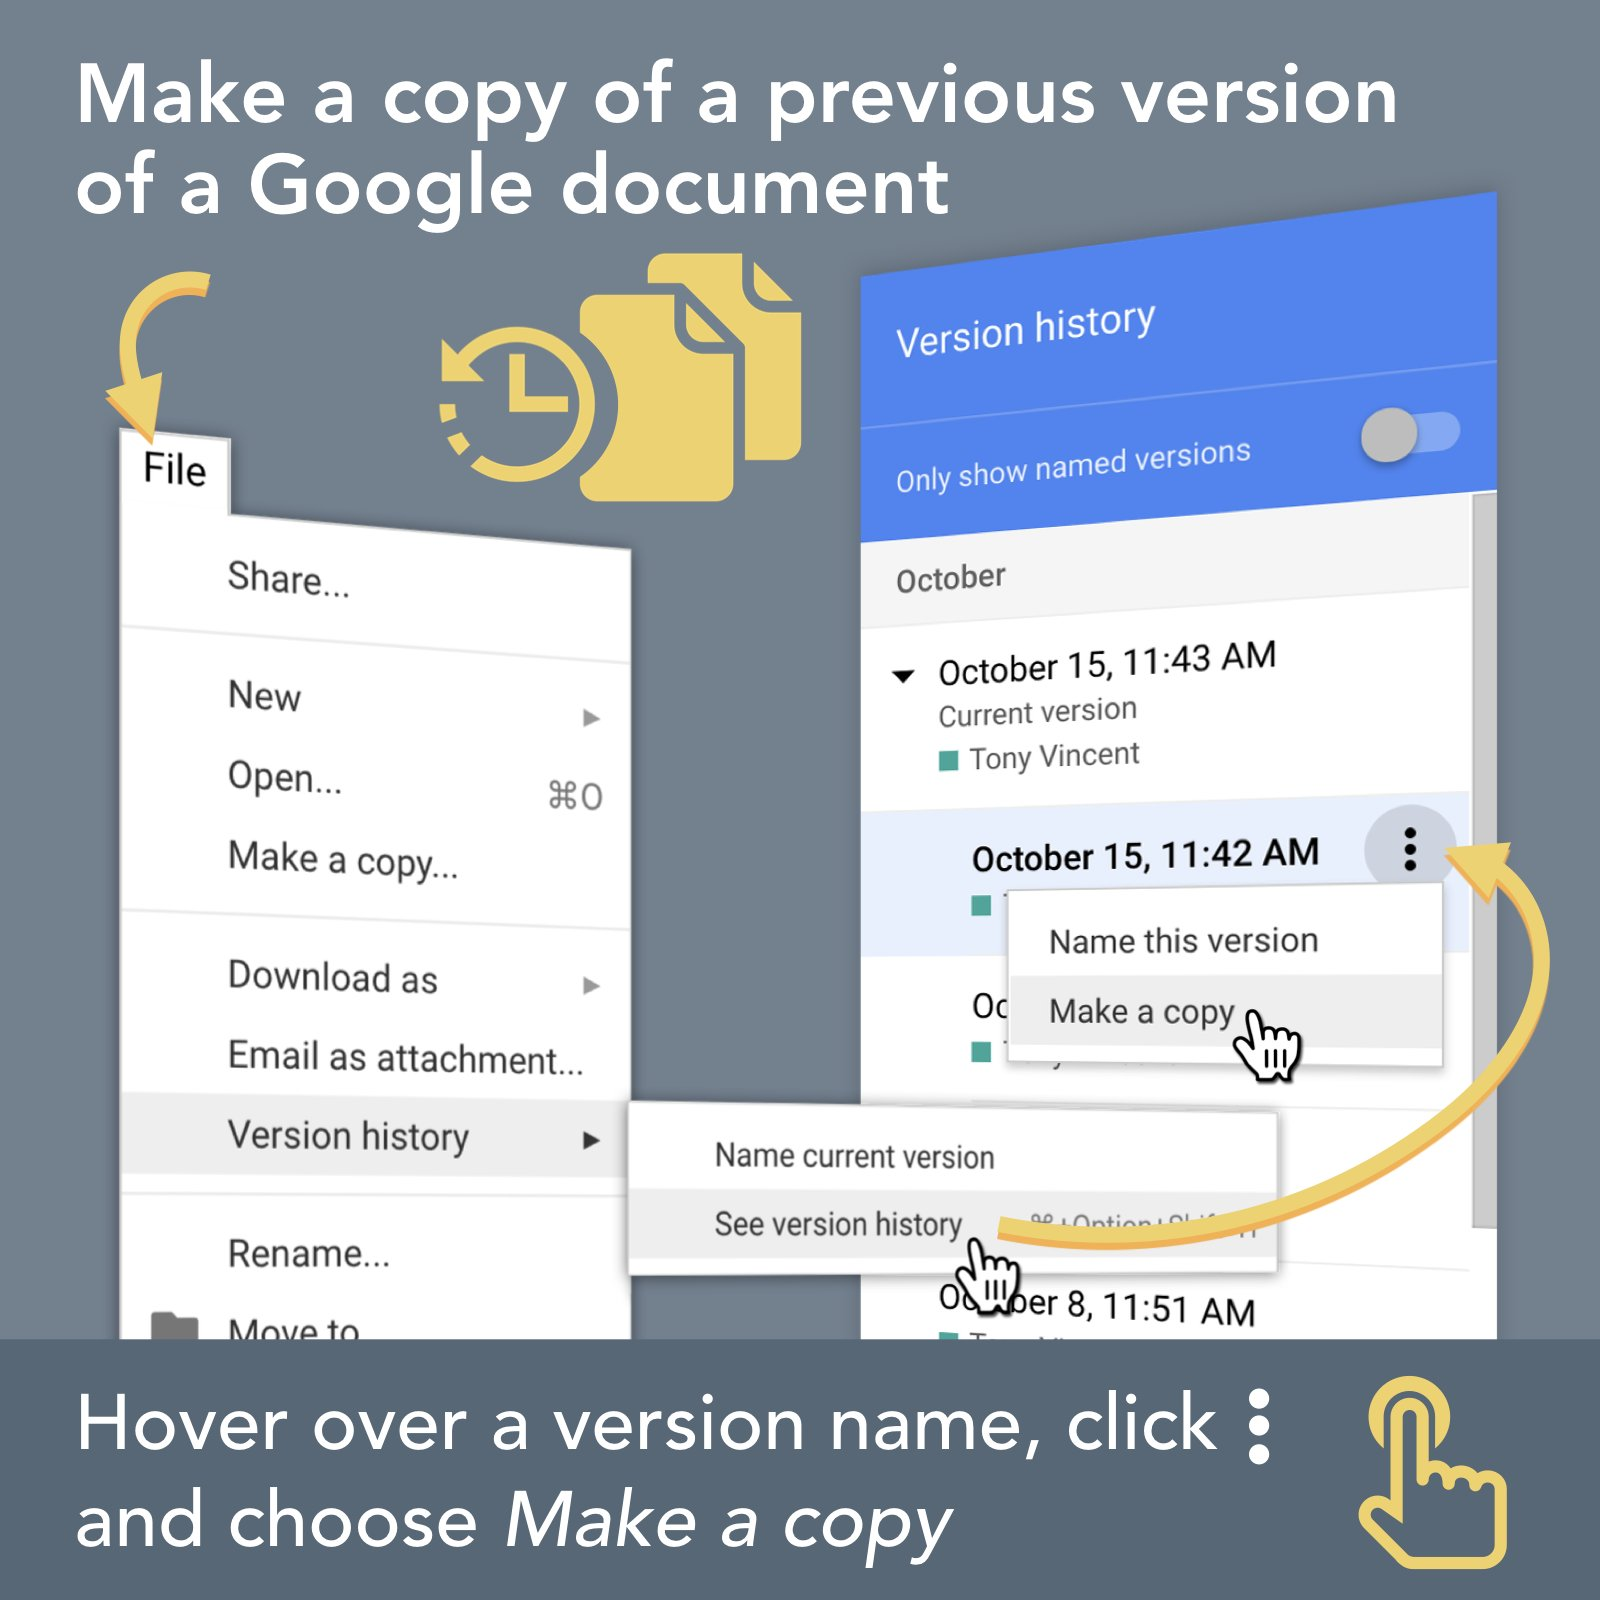 ⏪ The history of a Google document's revisions can be found in the Version History. It's reassuring to know that you can always retrieve a past version of a document. #GoogleEDU #ClassyGraphics https://t.co/ulZJbs7CNI